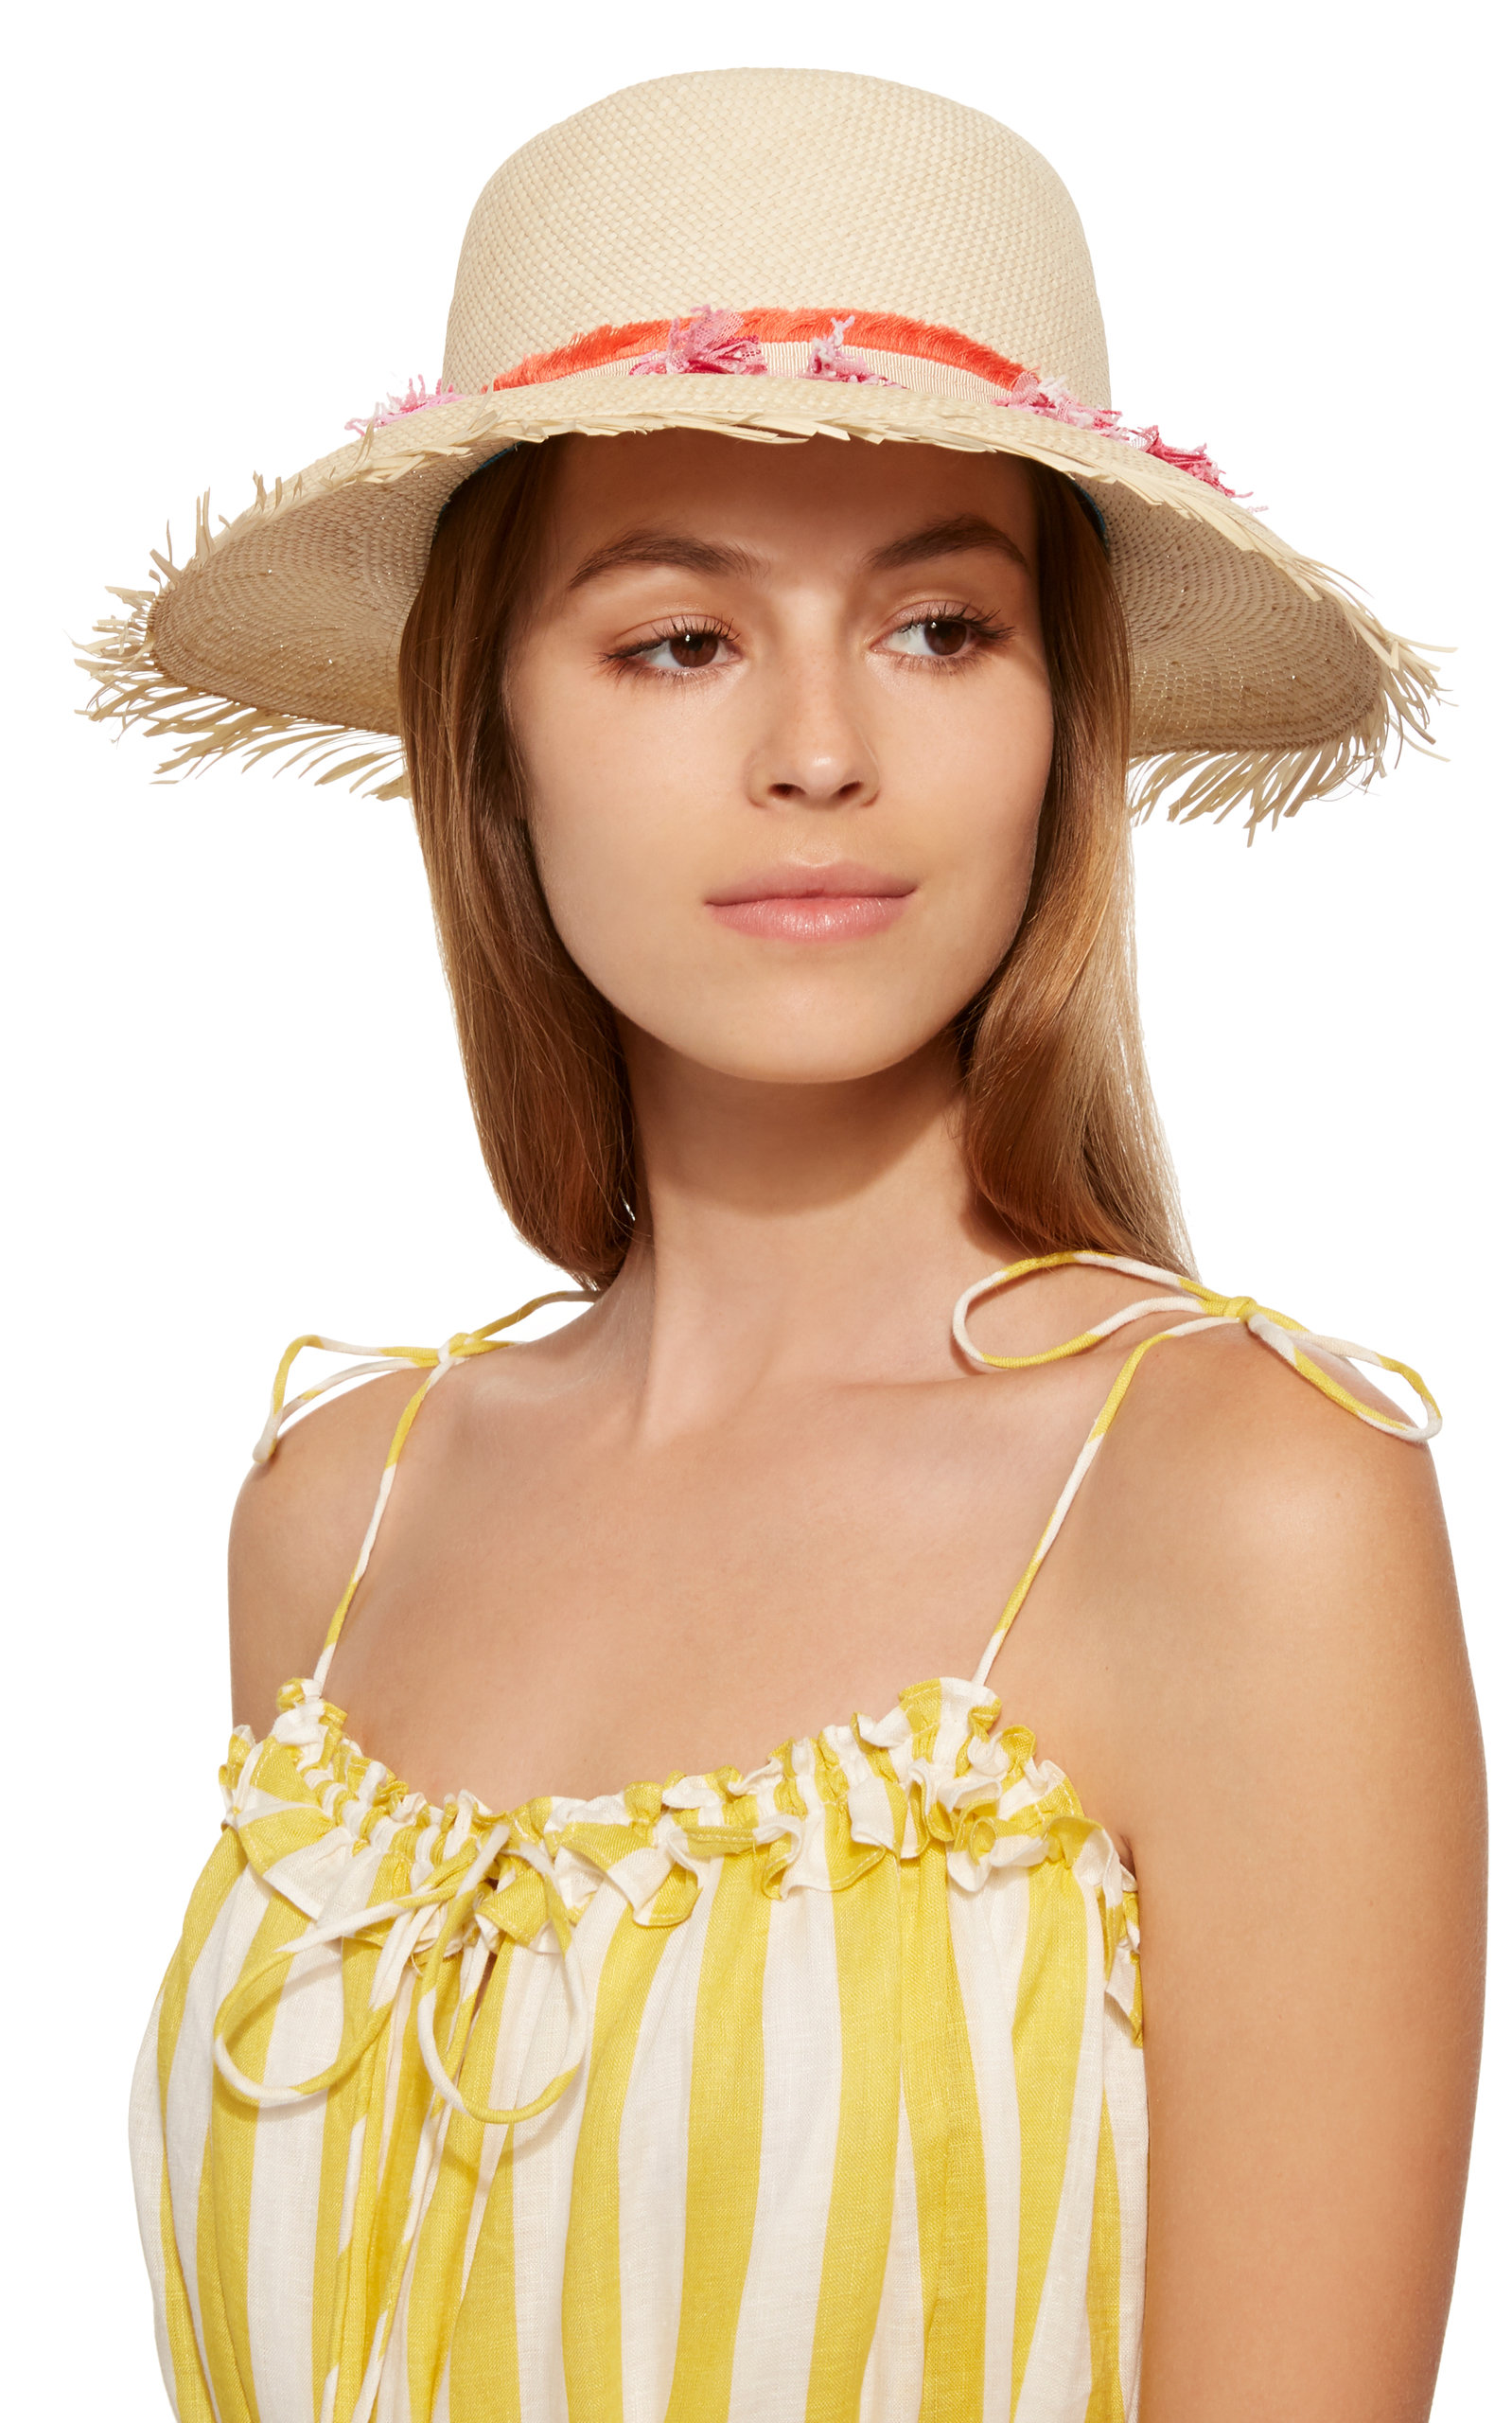 Playa Tasseled Straw Bucket Hat YESTADT MILLINERY hz5S1SqR